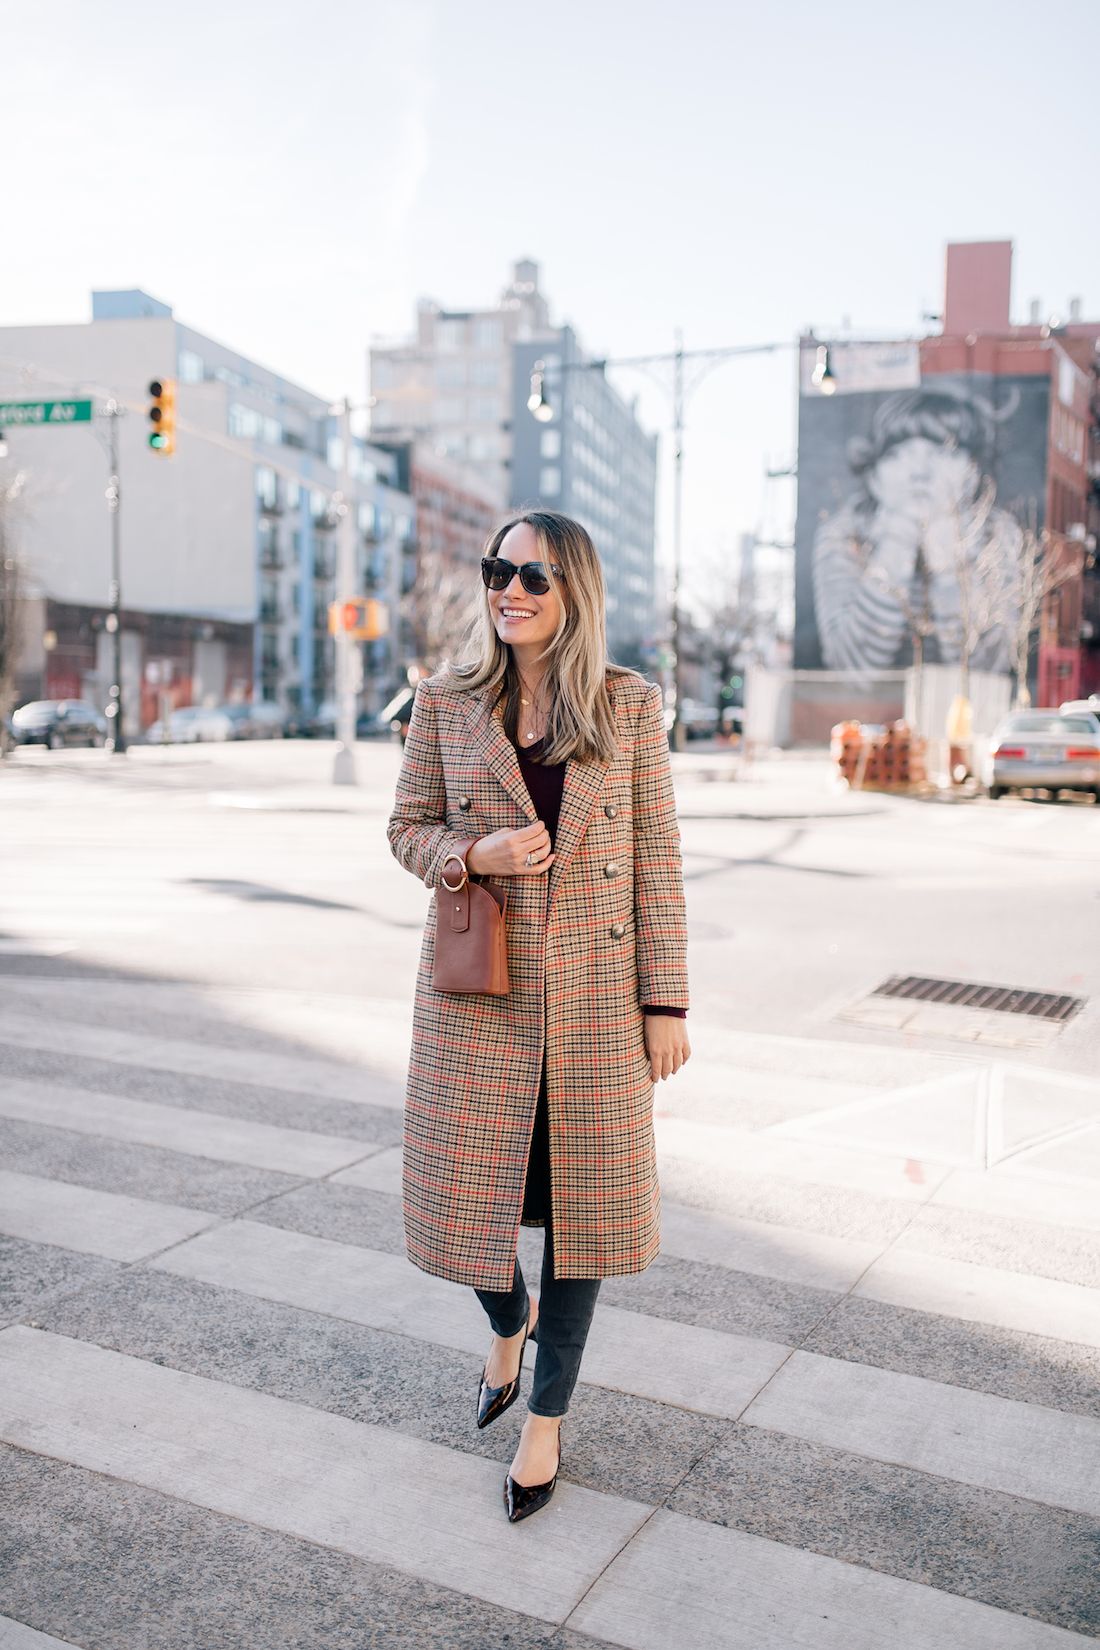 Grace Atwood is sharing a winter outfit in NYC